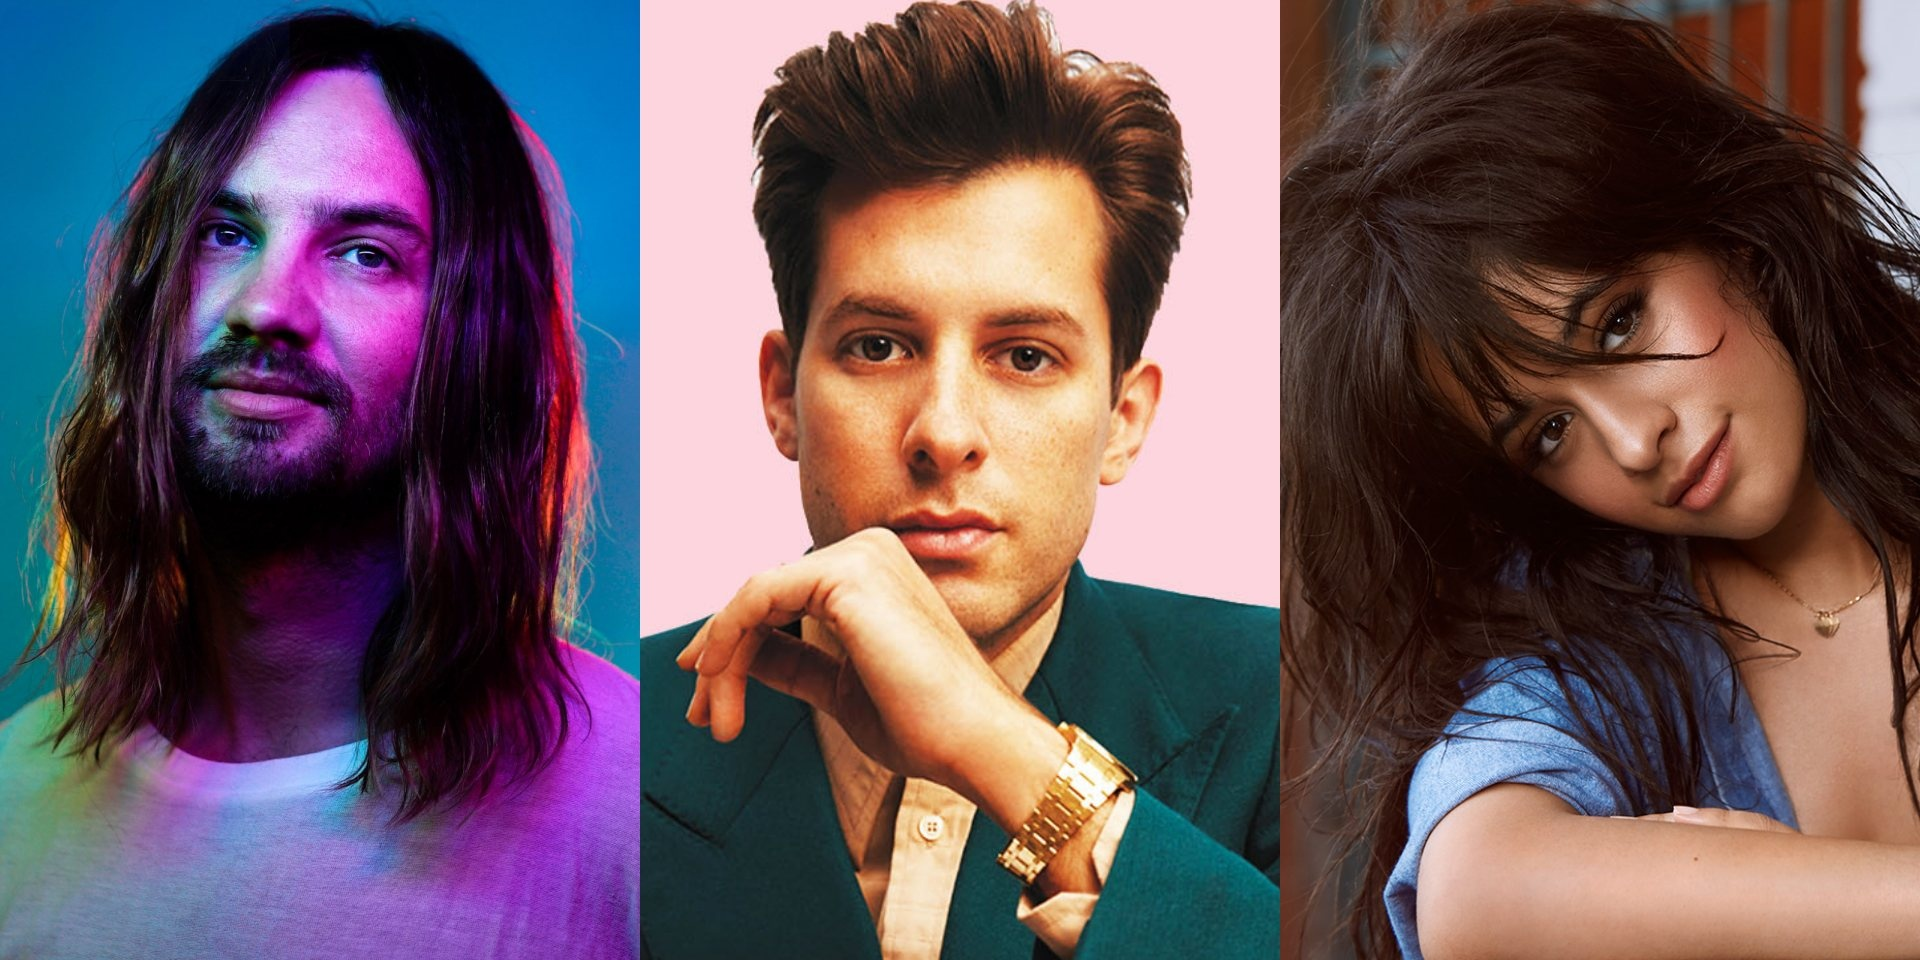 Mark Ronson releases new song 'Find U Again feat. Camila Cabello', co-written by Tame Impala's Kevin Parker – listen